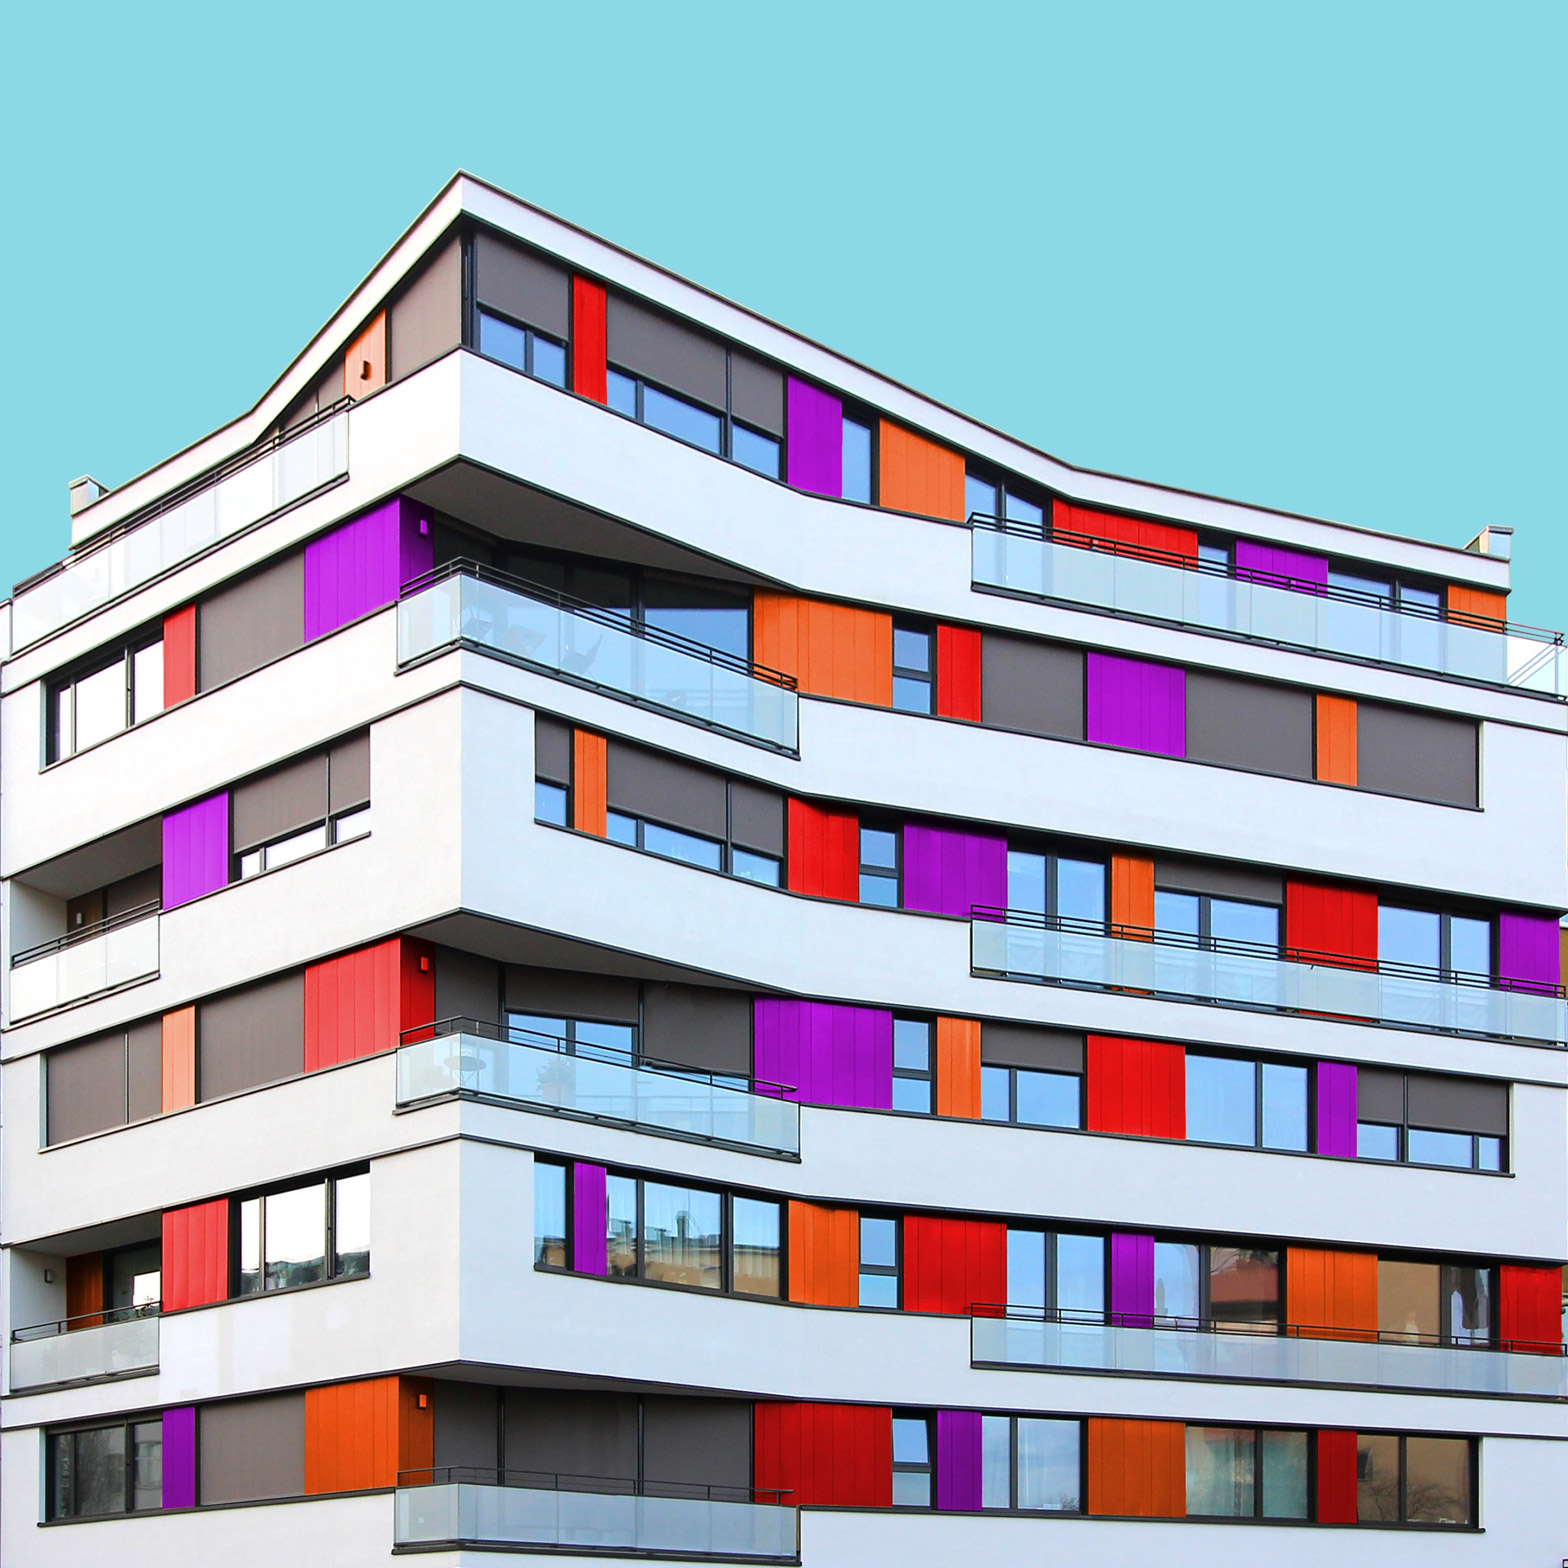 architectural essay artificial topography rdquo by fujiki  paul eis gives colourful makeover to german city architecture colourful berlin photography architecture essay by paul